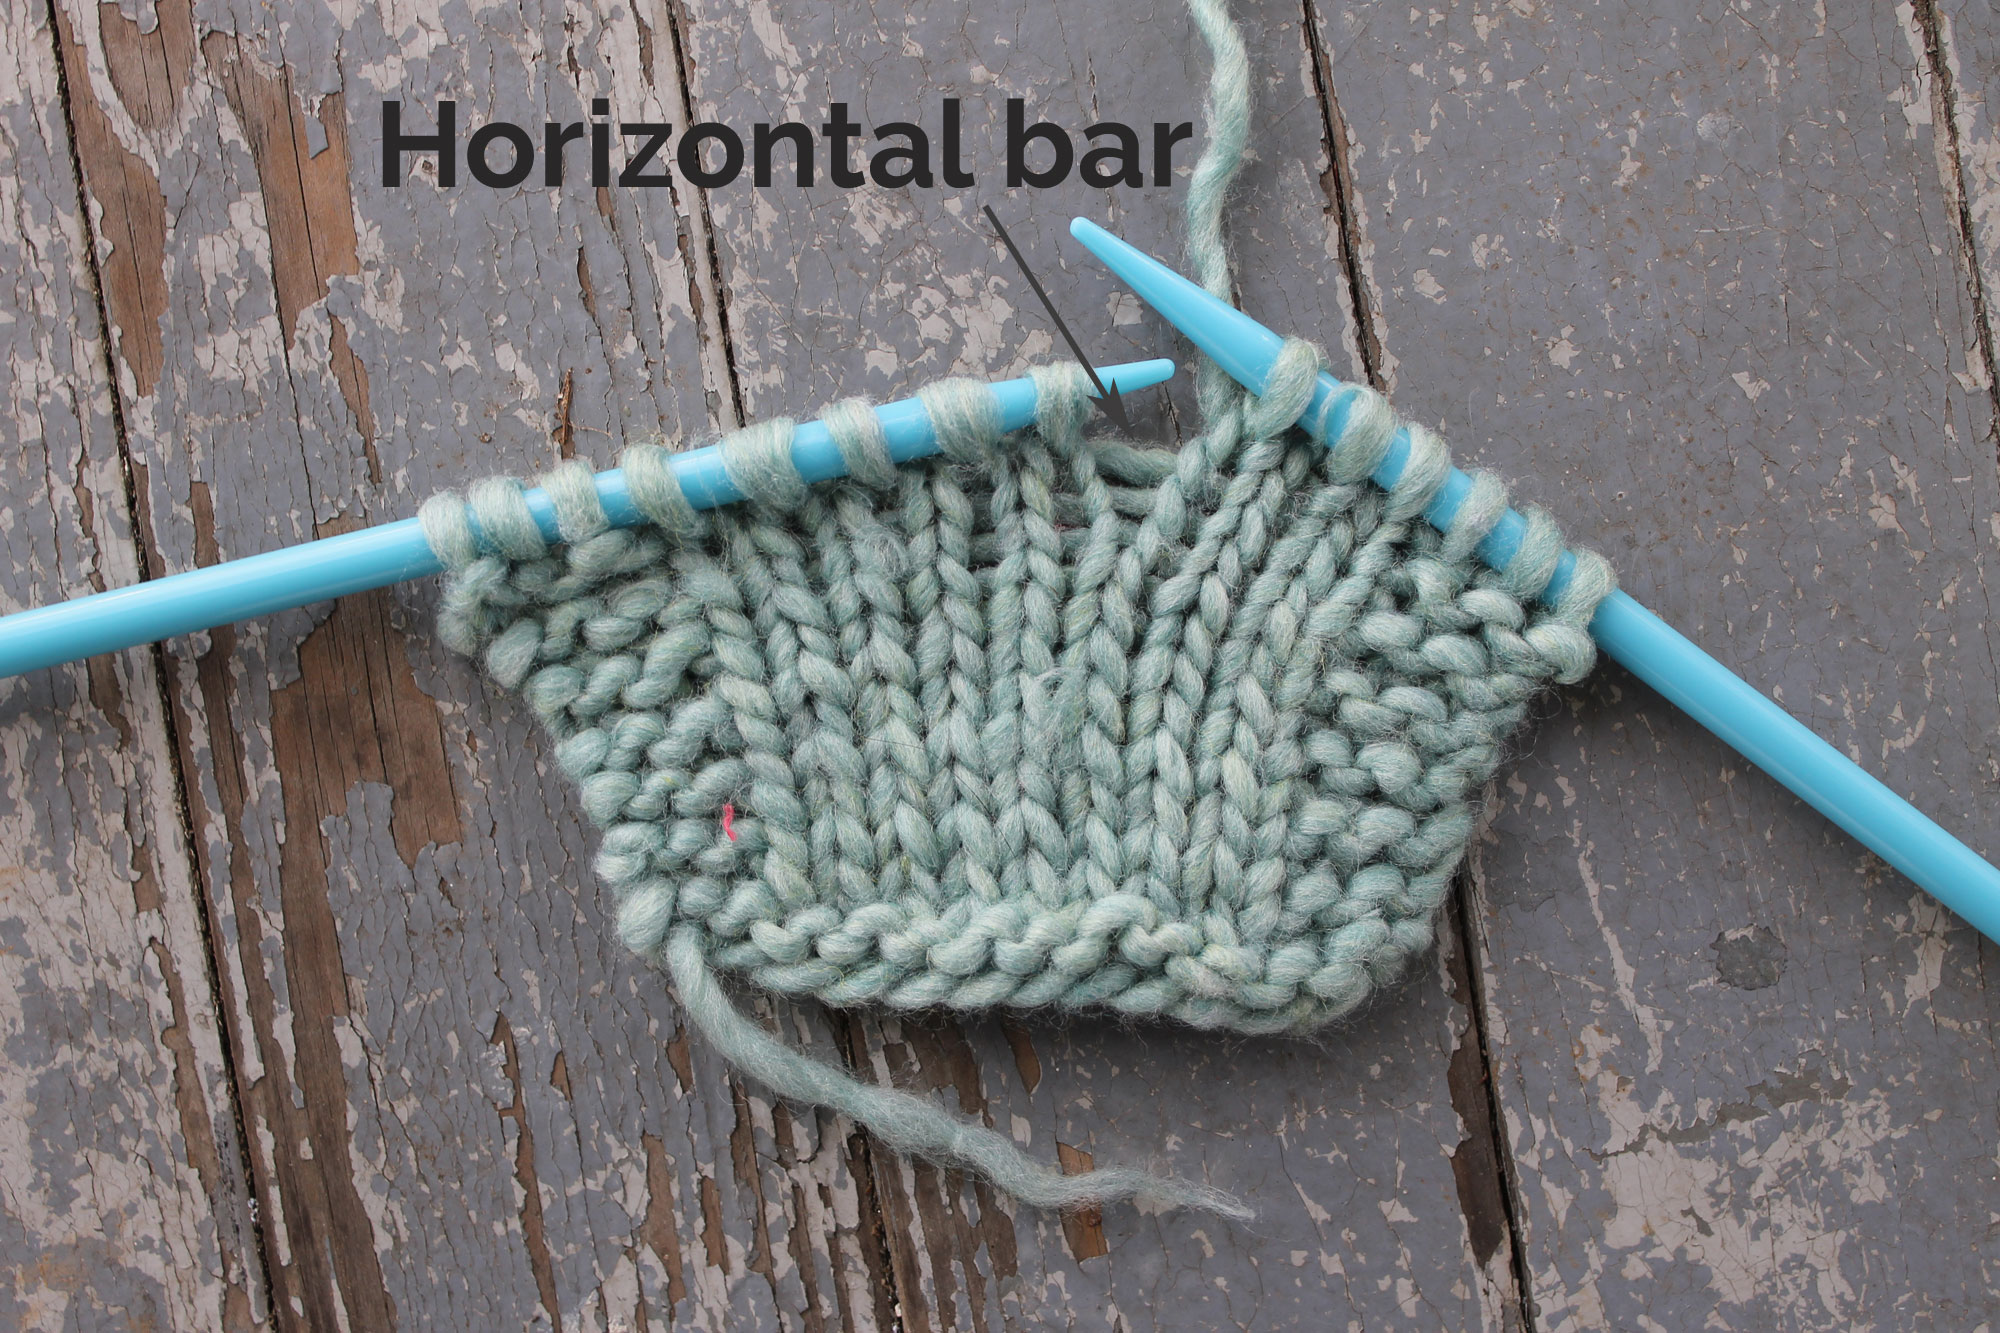 Horizontal bar in make 1 knitting